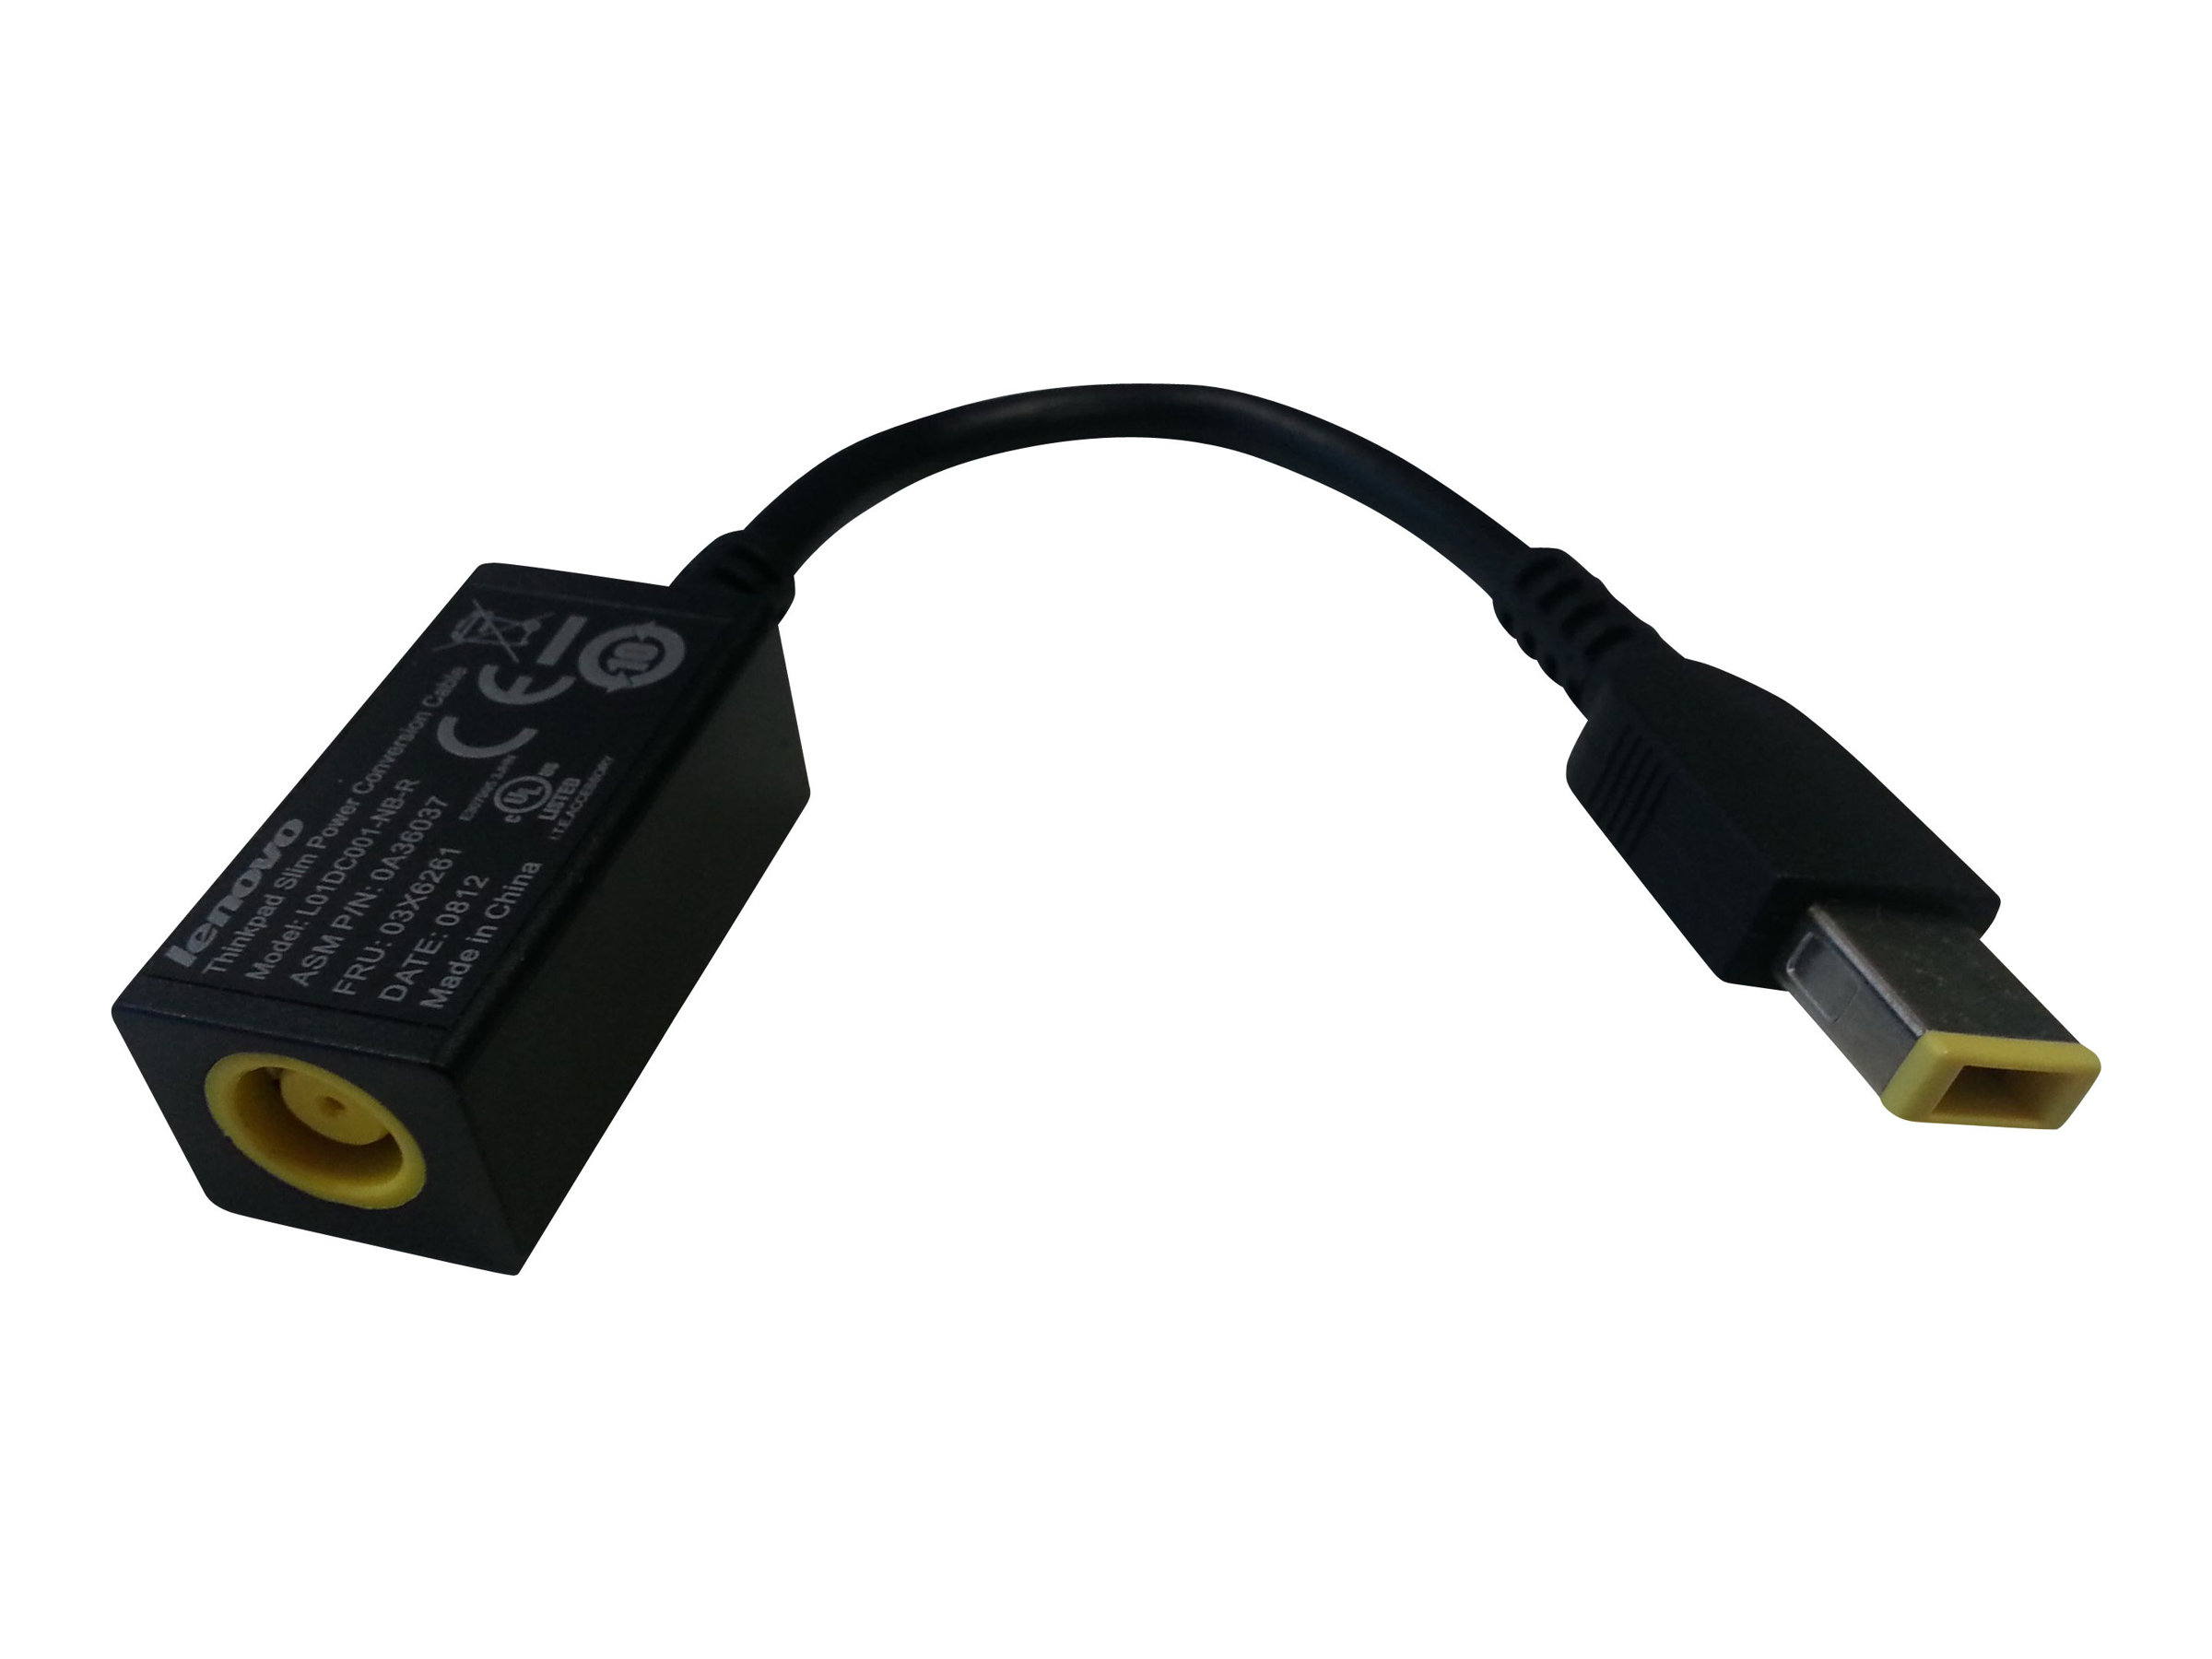 Lenovo ThinkPad Slim Power Conversion Cable - Stromkabel